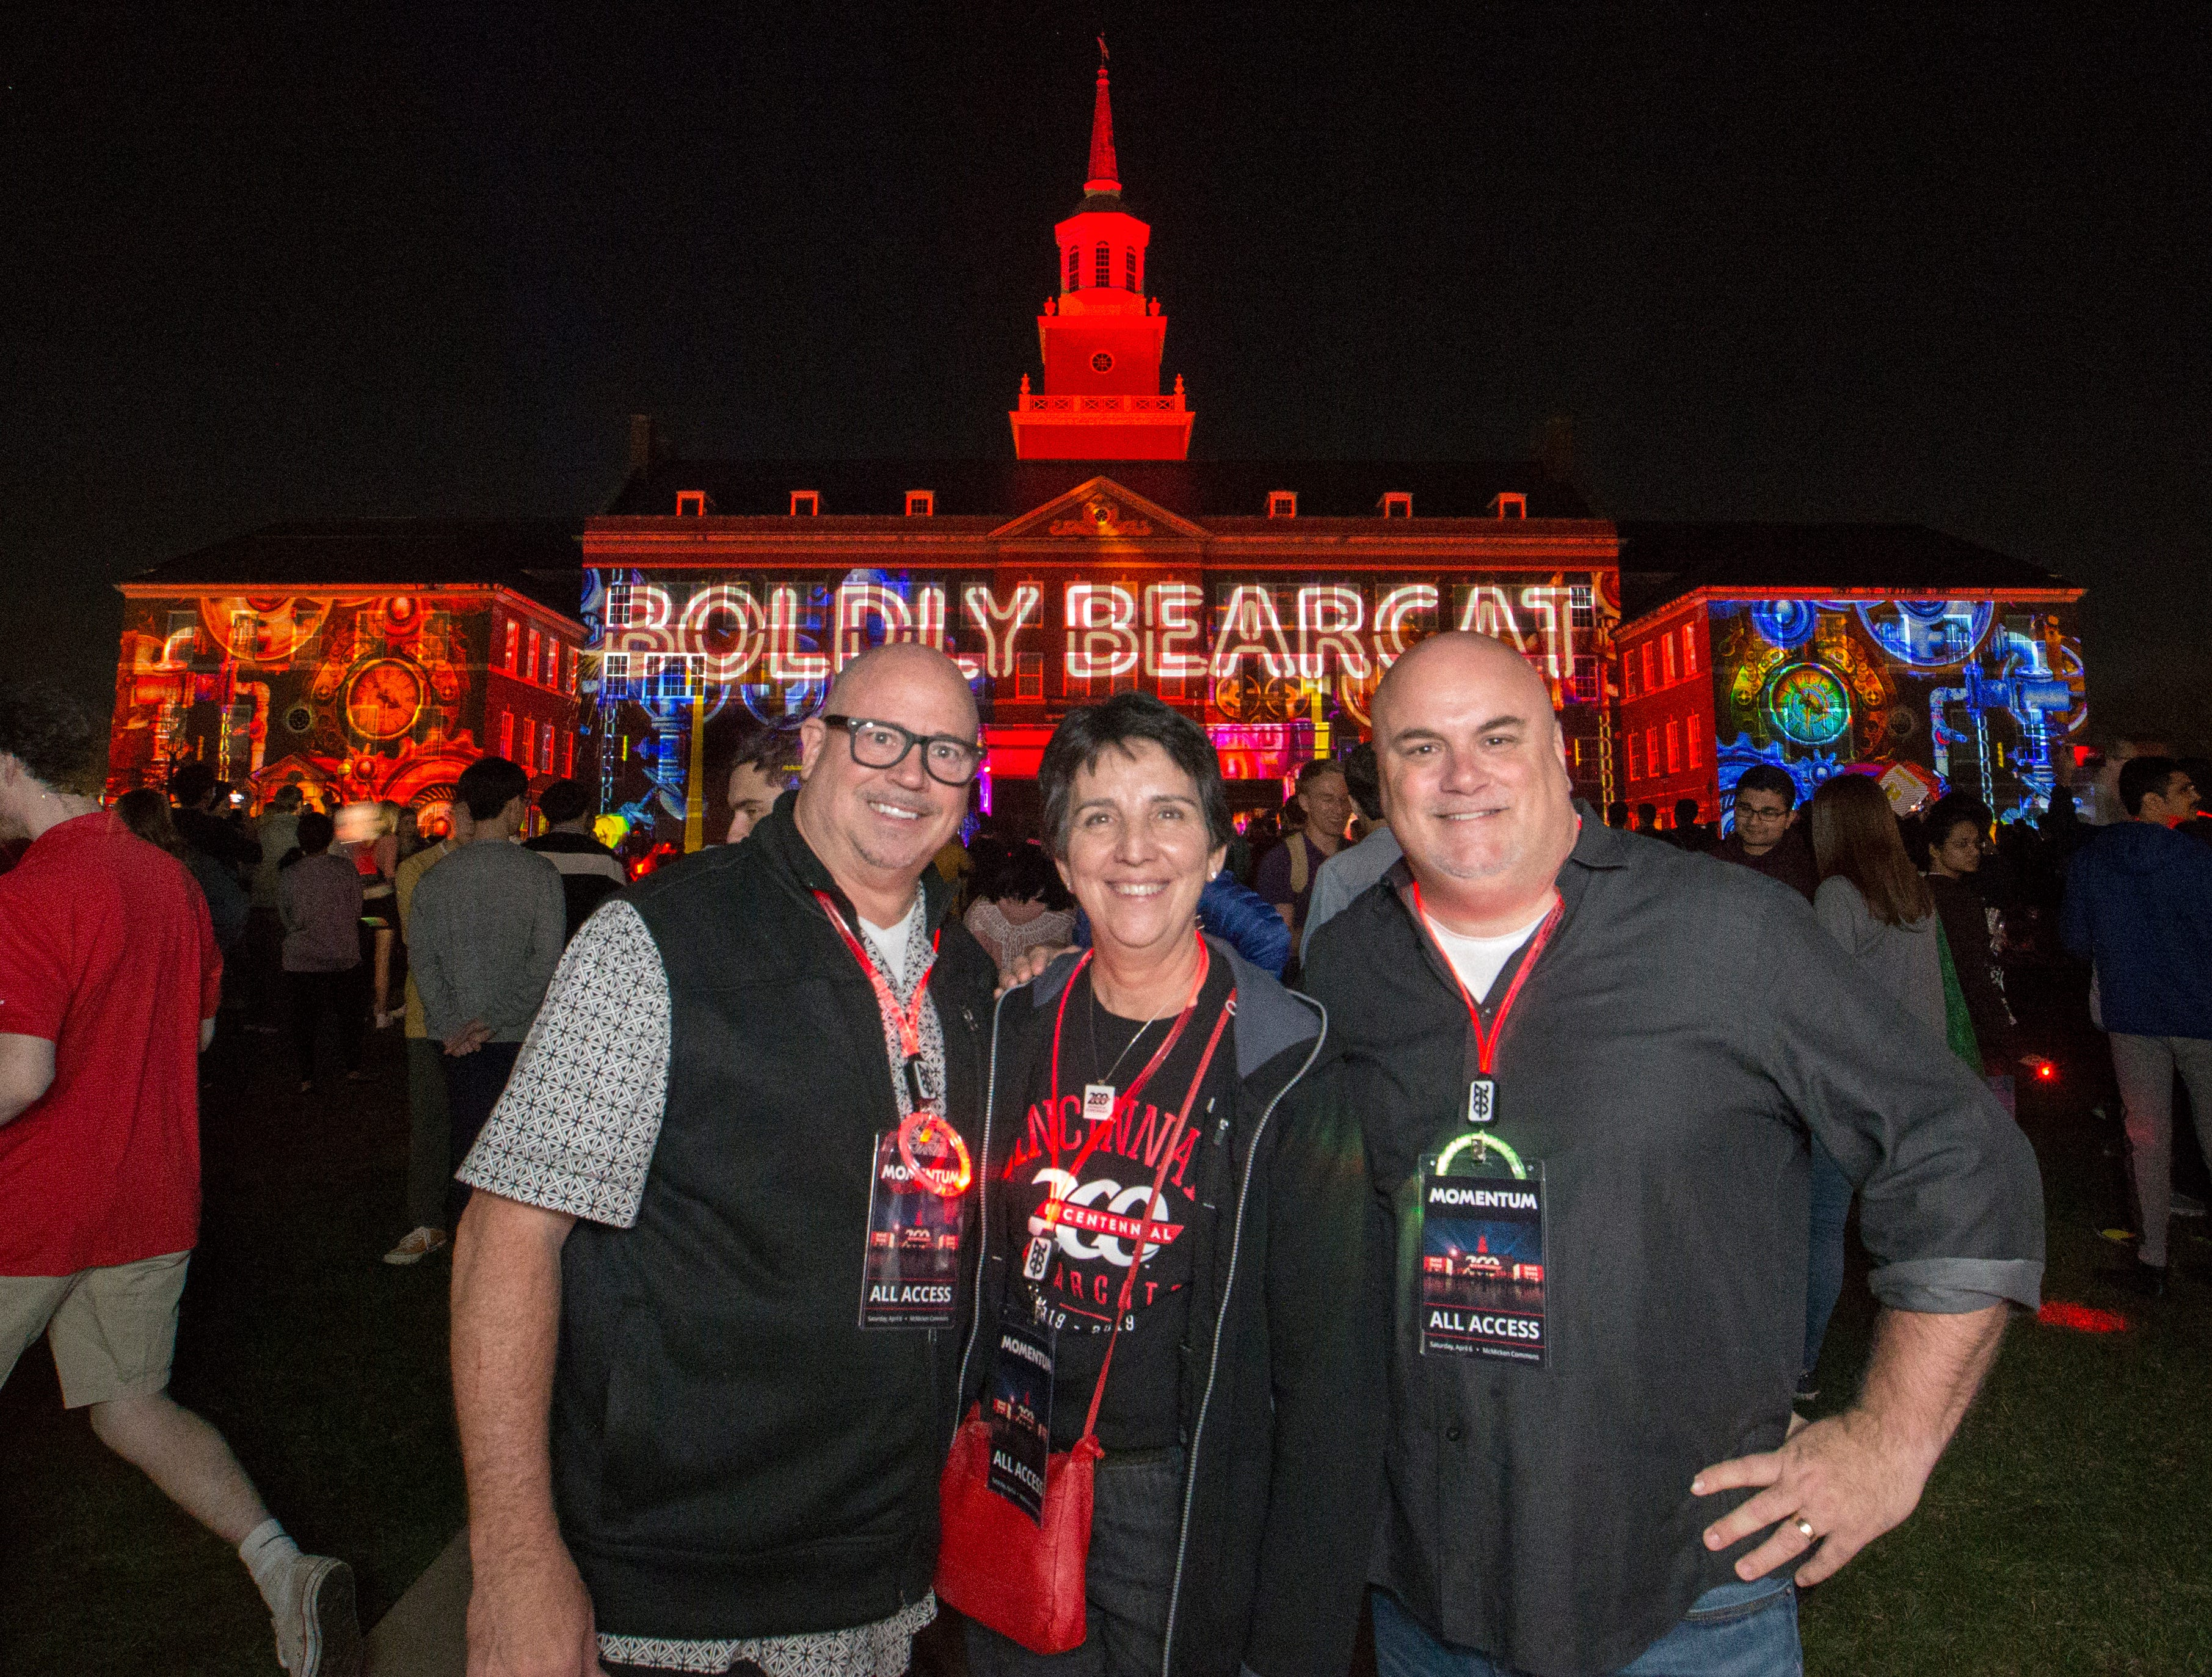 Left to right Steve McGowan, Kimberlee J. Dobbs UC Bicentennial Co-Chair and Dan Reynolds posed with Boldly Bearcat illuminating on McMicken Hall during Community Day to celebrate UC's Bicentennial Saturday April 6, 2019 at McMicken Commons on the campus of the University of Cincinnati. Steve McGowan and Dan Reynolds are co-owner of Brave Berlin. University of Cincinnati/Joseph Fuqua II